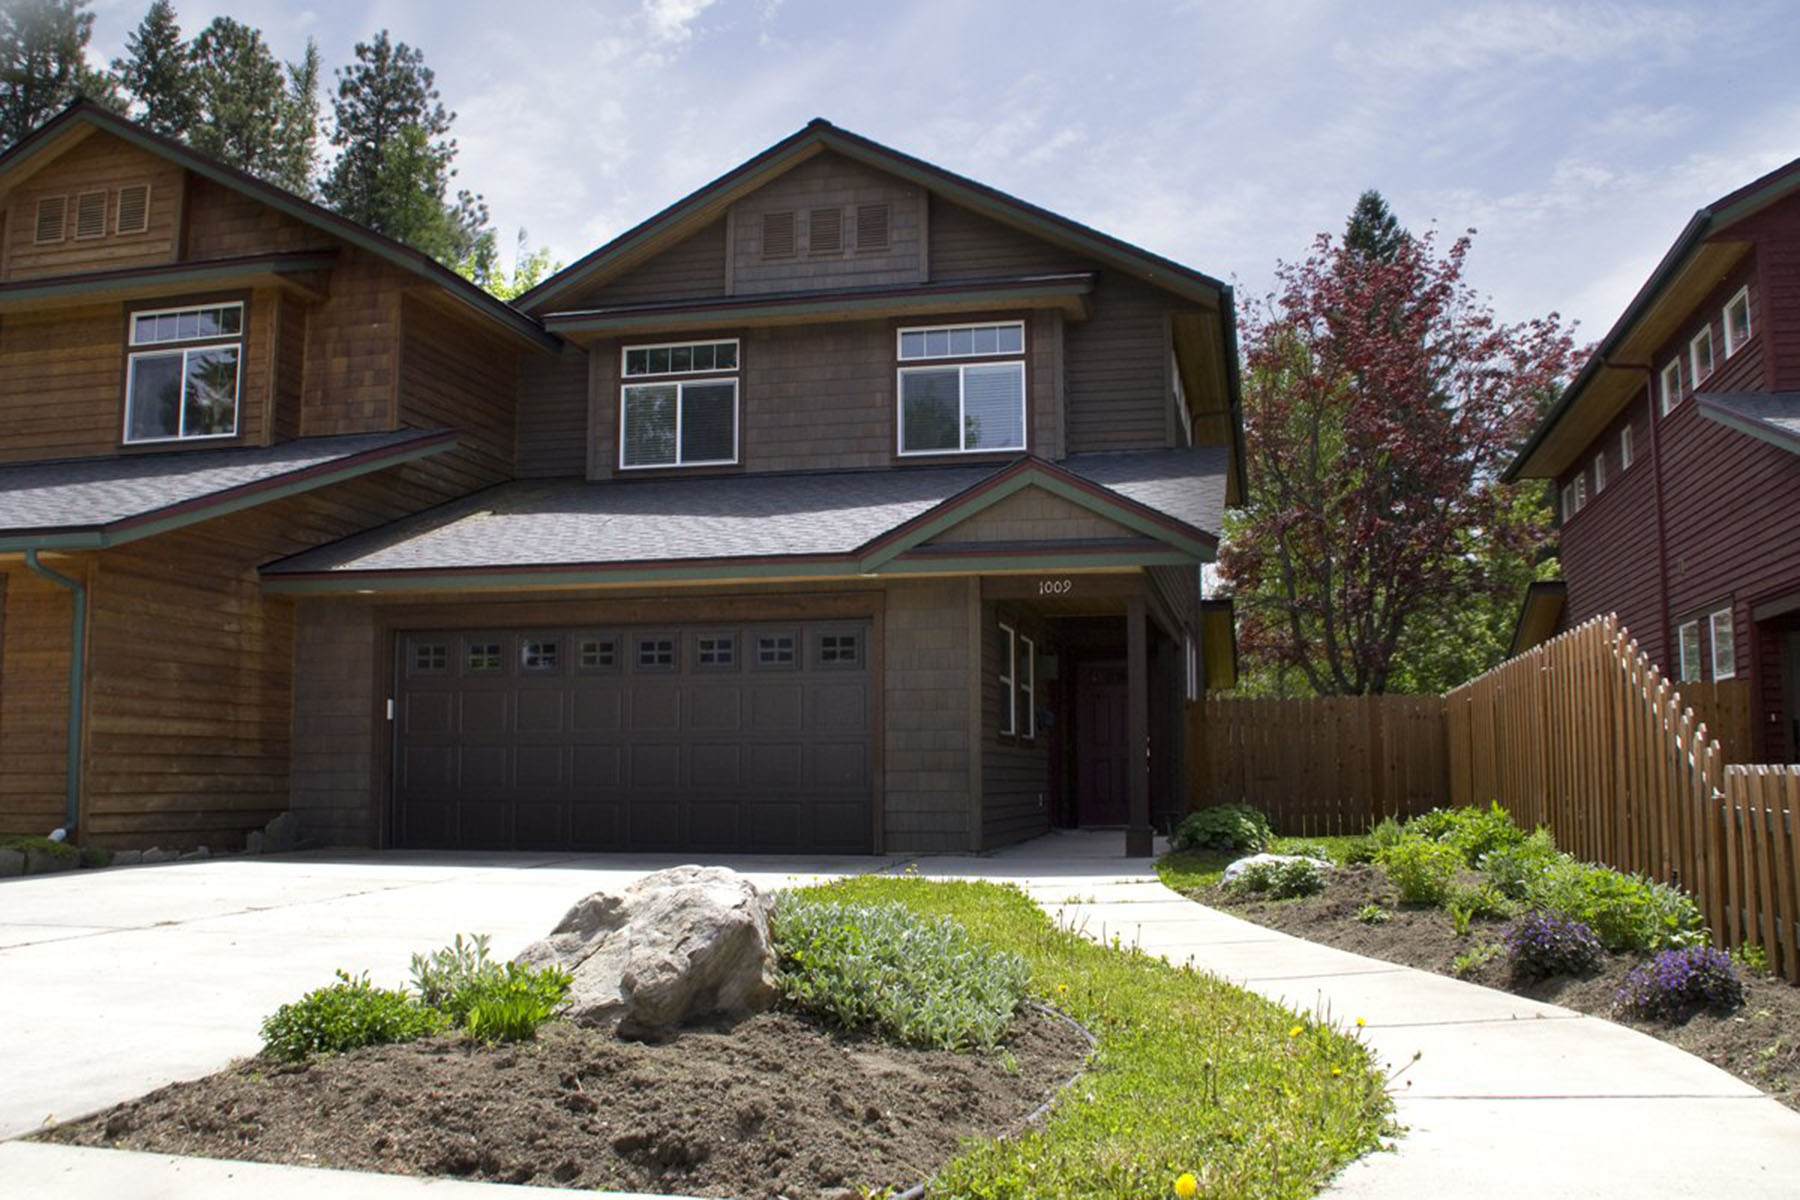 Single Family Home for Sale at Well-appointed In-town Townhome! 1009 PINE ST Sandpoint, Idaho 83864 United States